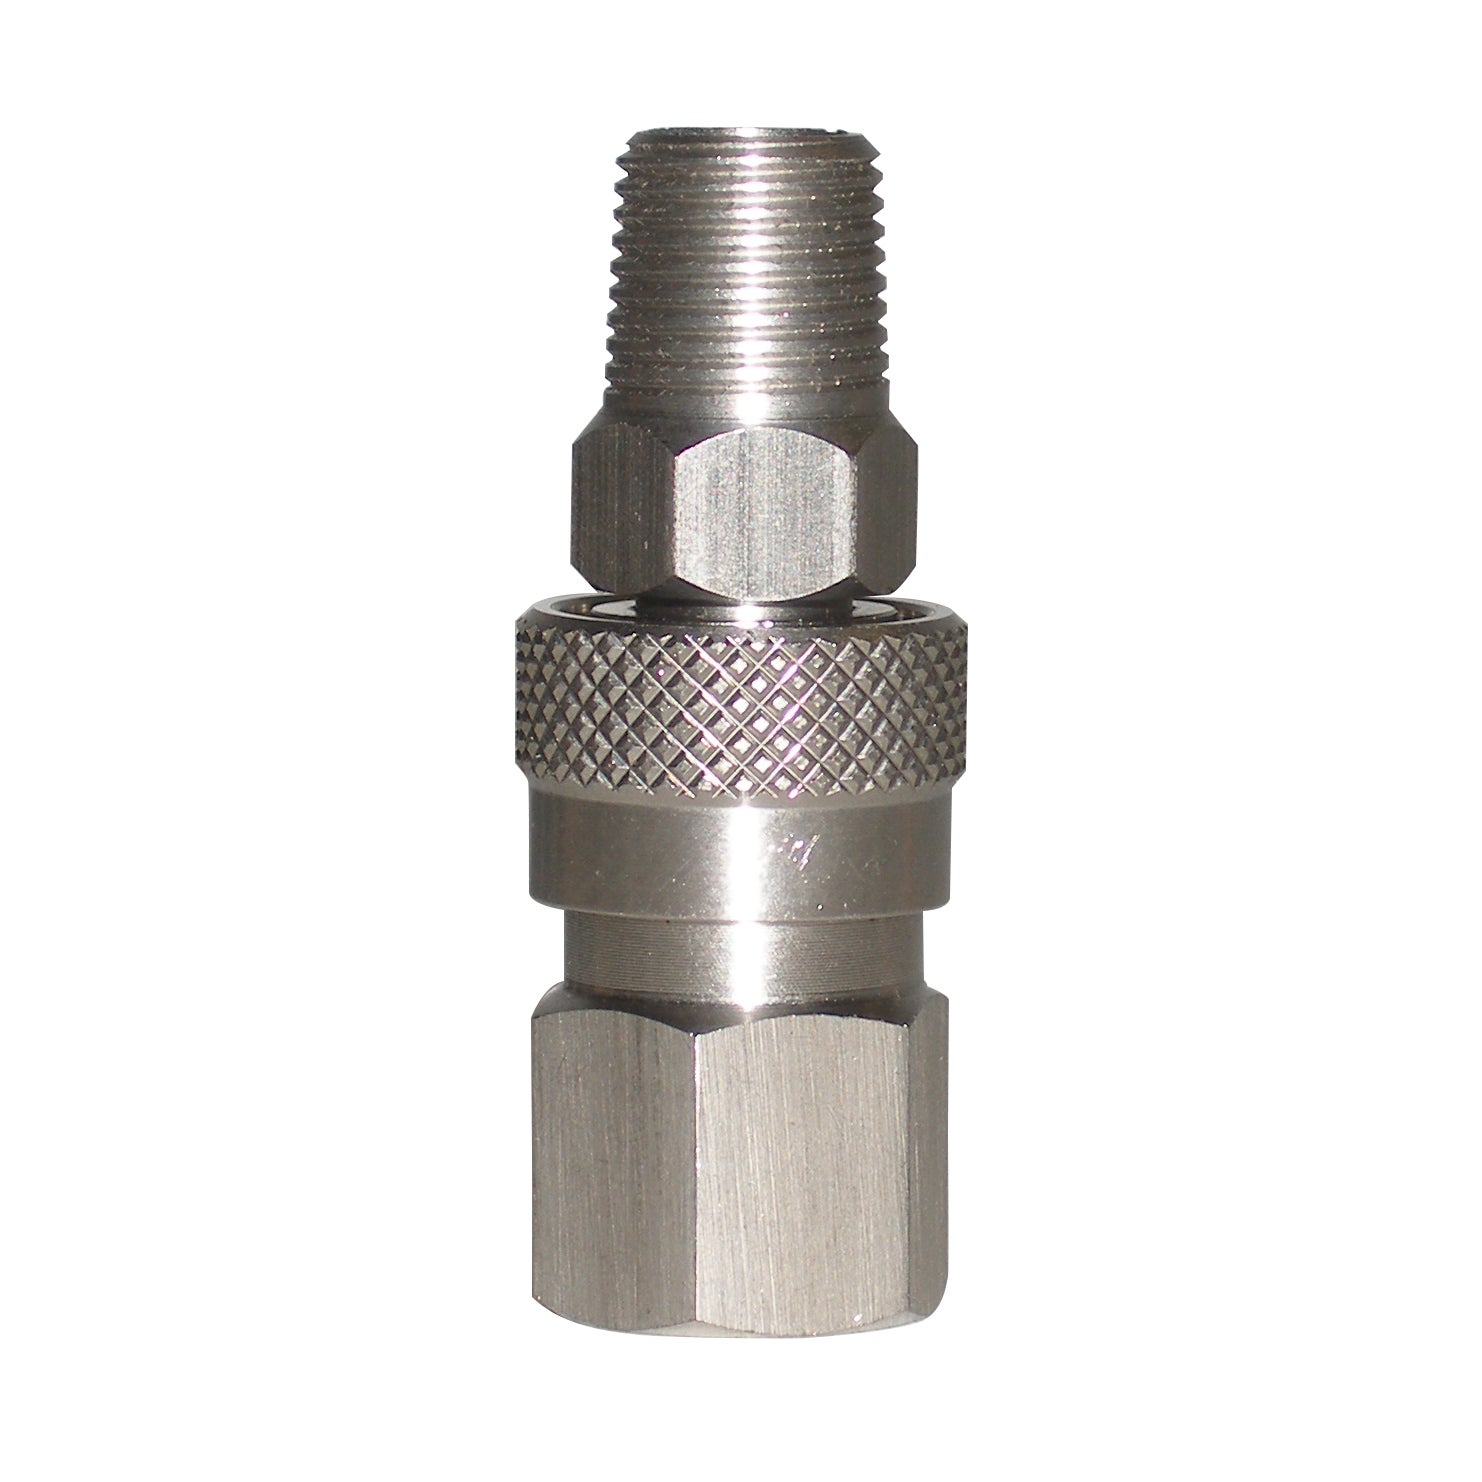 Generic Surplus Stainless Steel .125-inch NPT Gas Hose Quick Disconnect Set at Sears.com